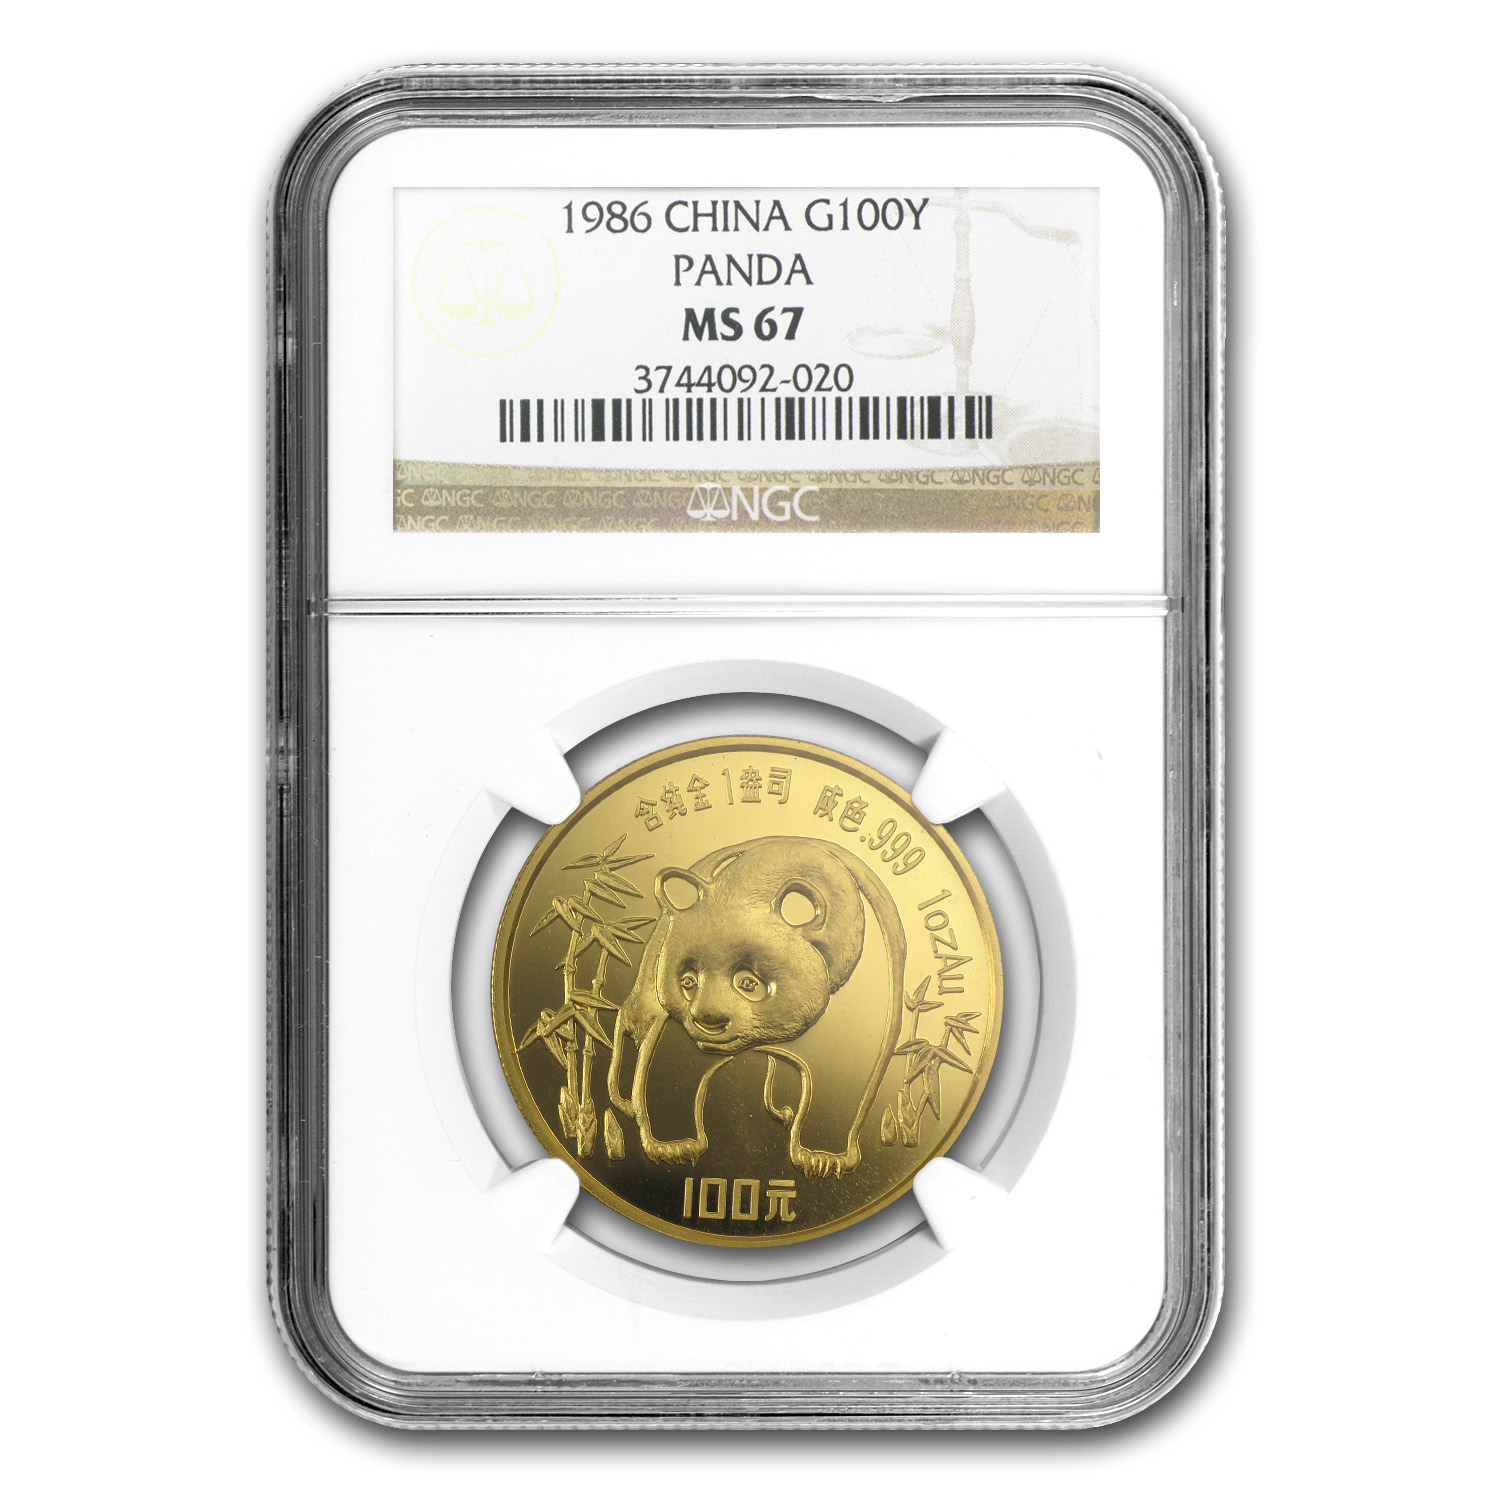 1986 China 1 oz Gold Panda MS-67 NGC